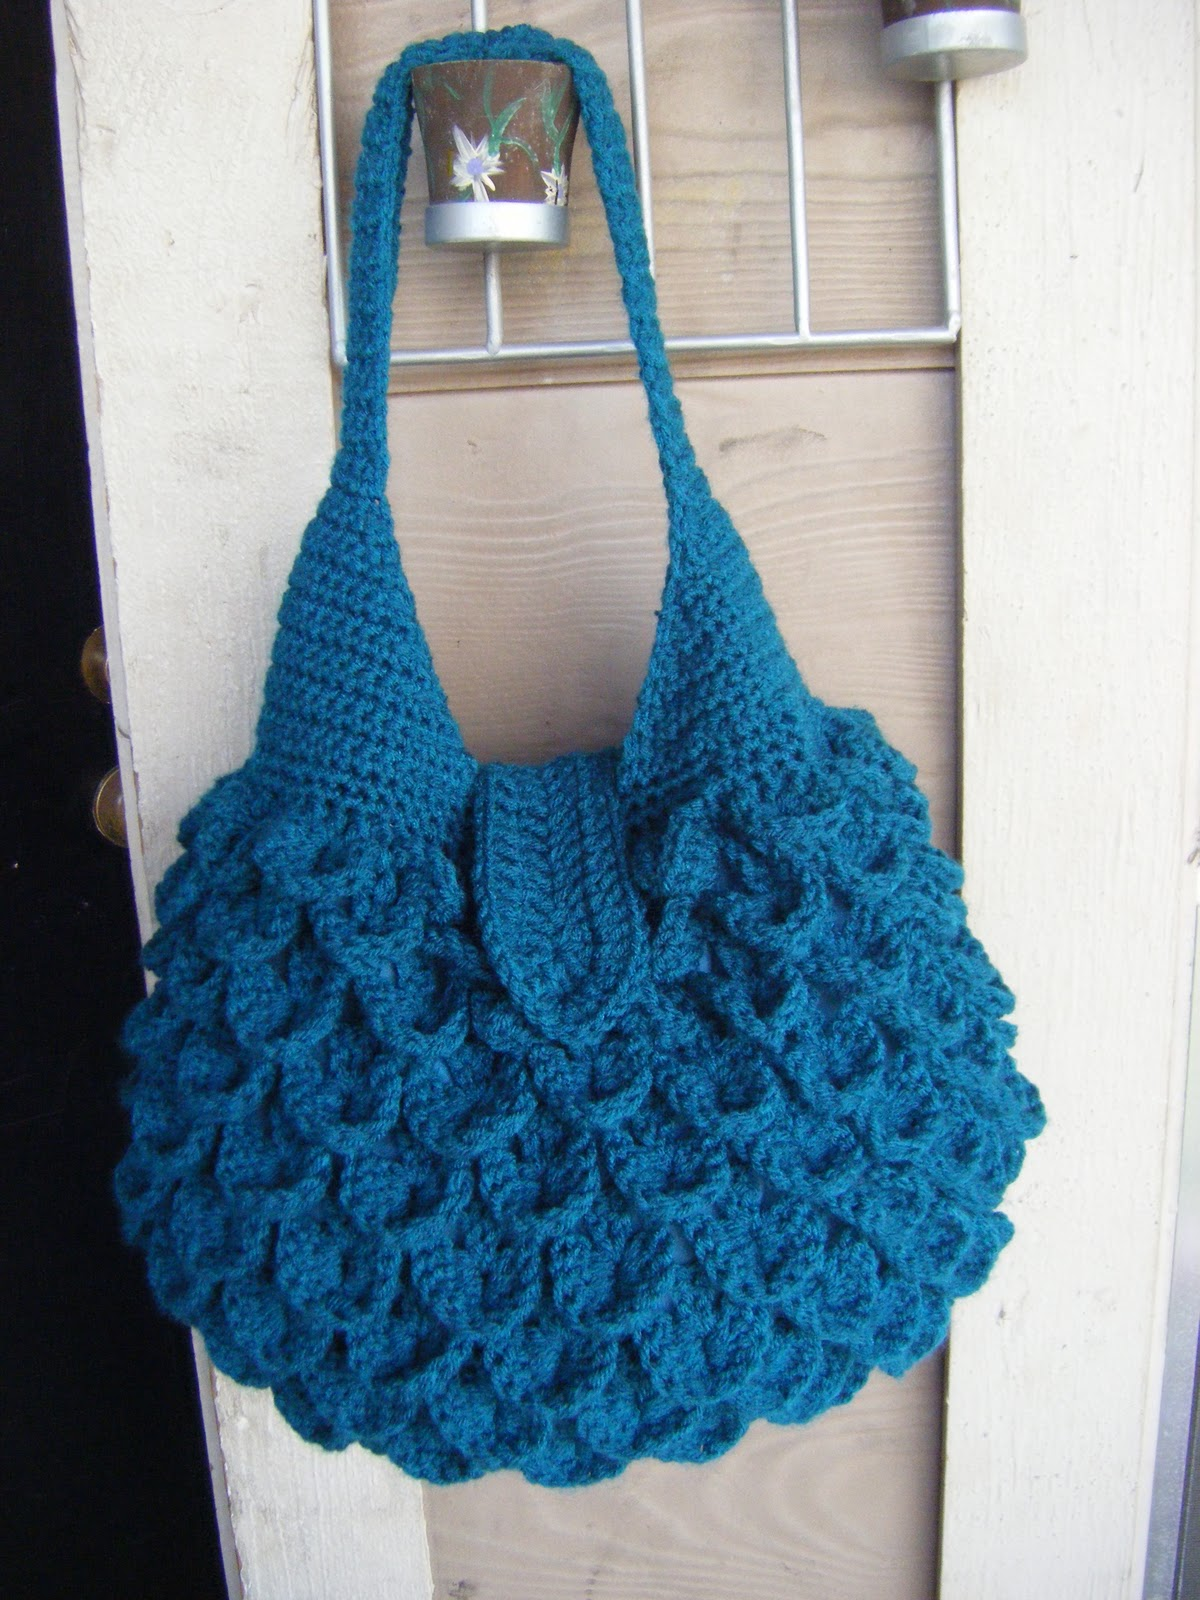 Free Crochet Purse And Bag Patterns : FREE CROCHET BAG HOLDER PATTERN - Crochet and Knitting Patterns